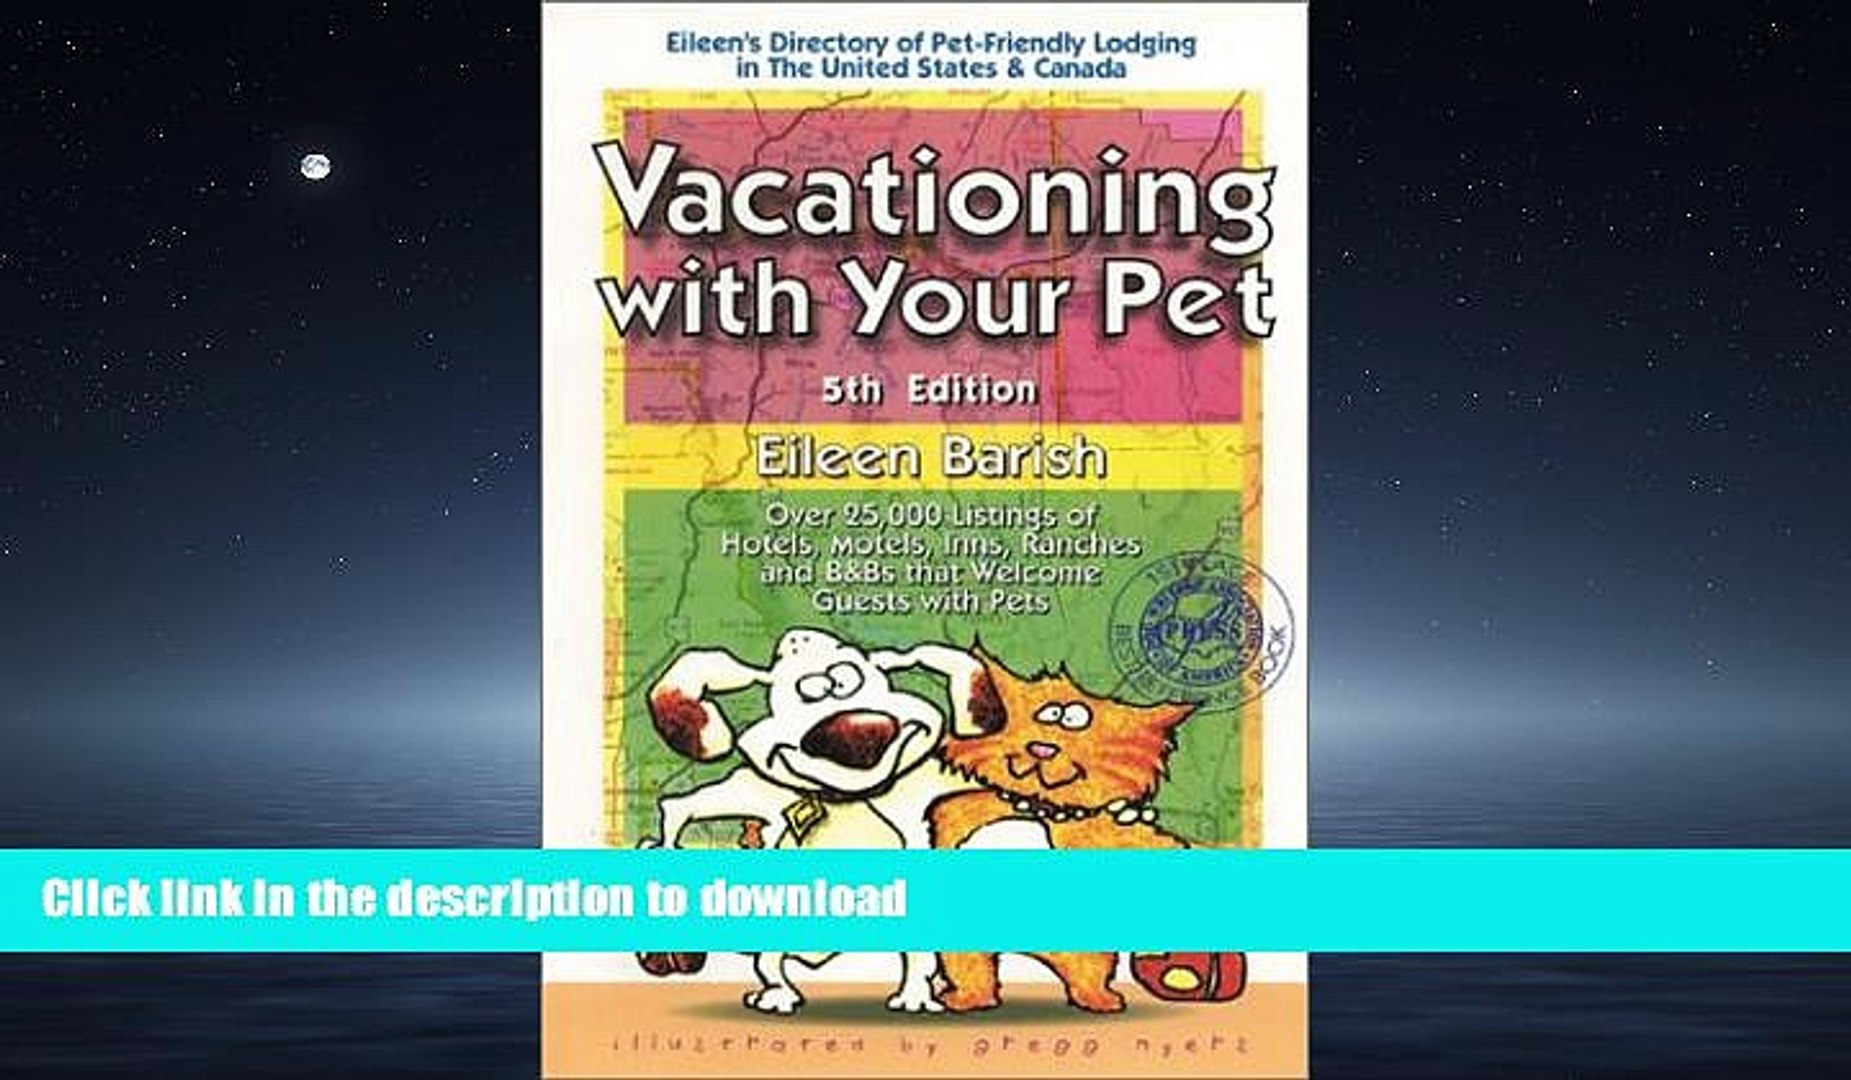 READ  Vacationing With Your Pet: Eileen s Directory of Pet-Friendly Lodging in the United